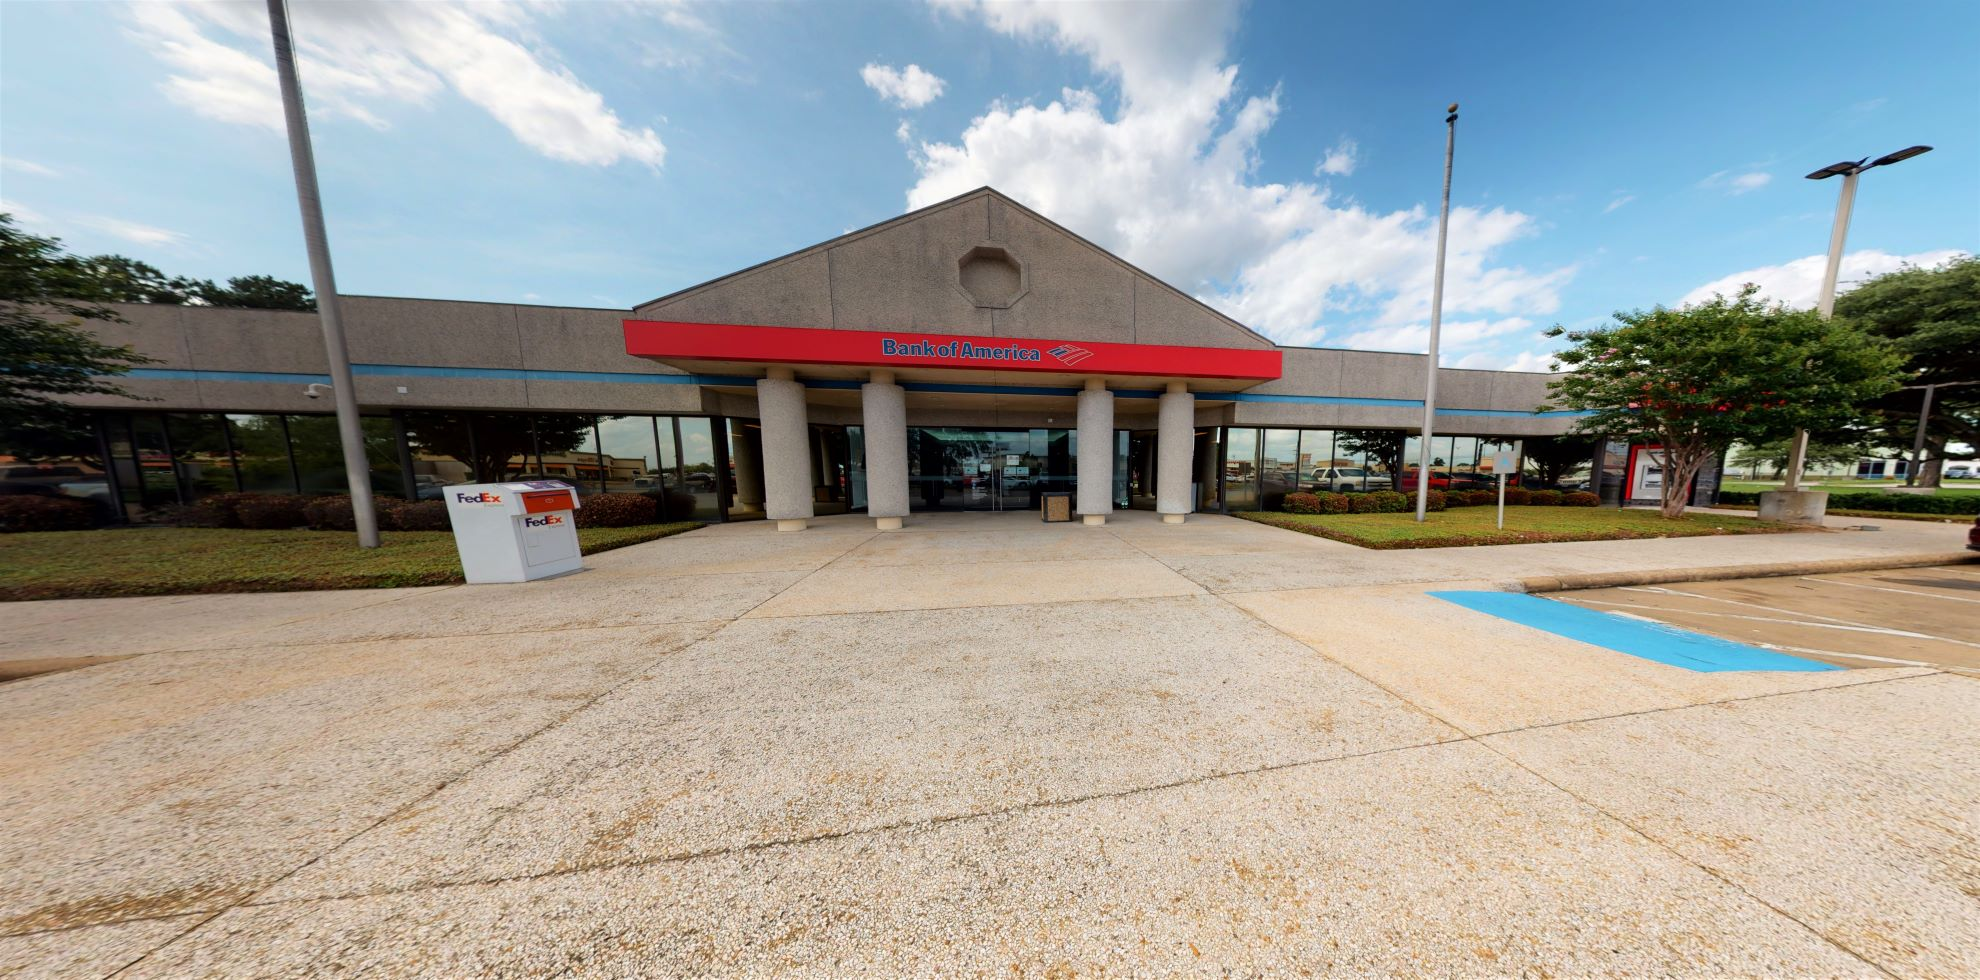 Bank of America financial center with drive-thru ATM | 11025 FM 1960 Rd W, Houston, TX 77065